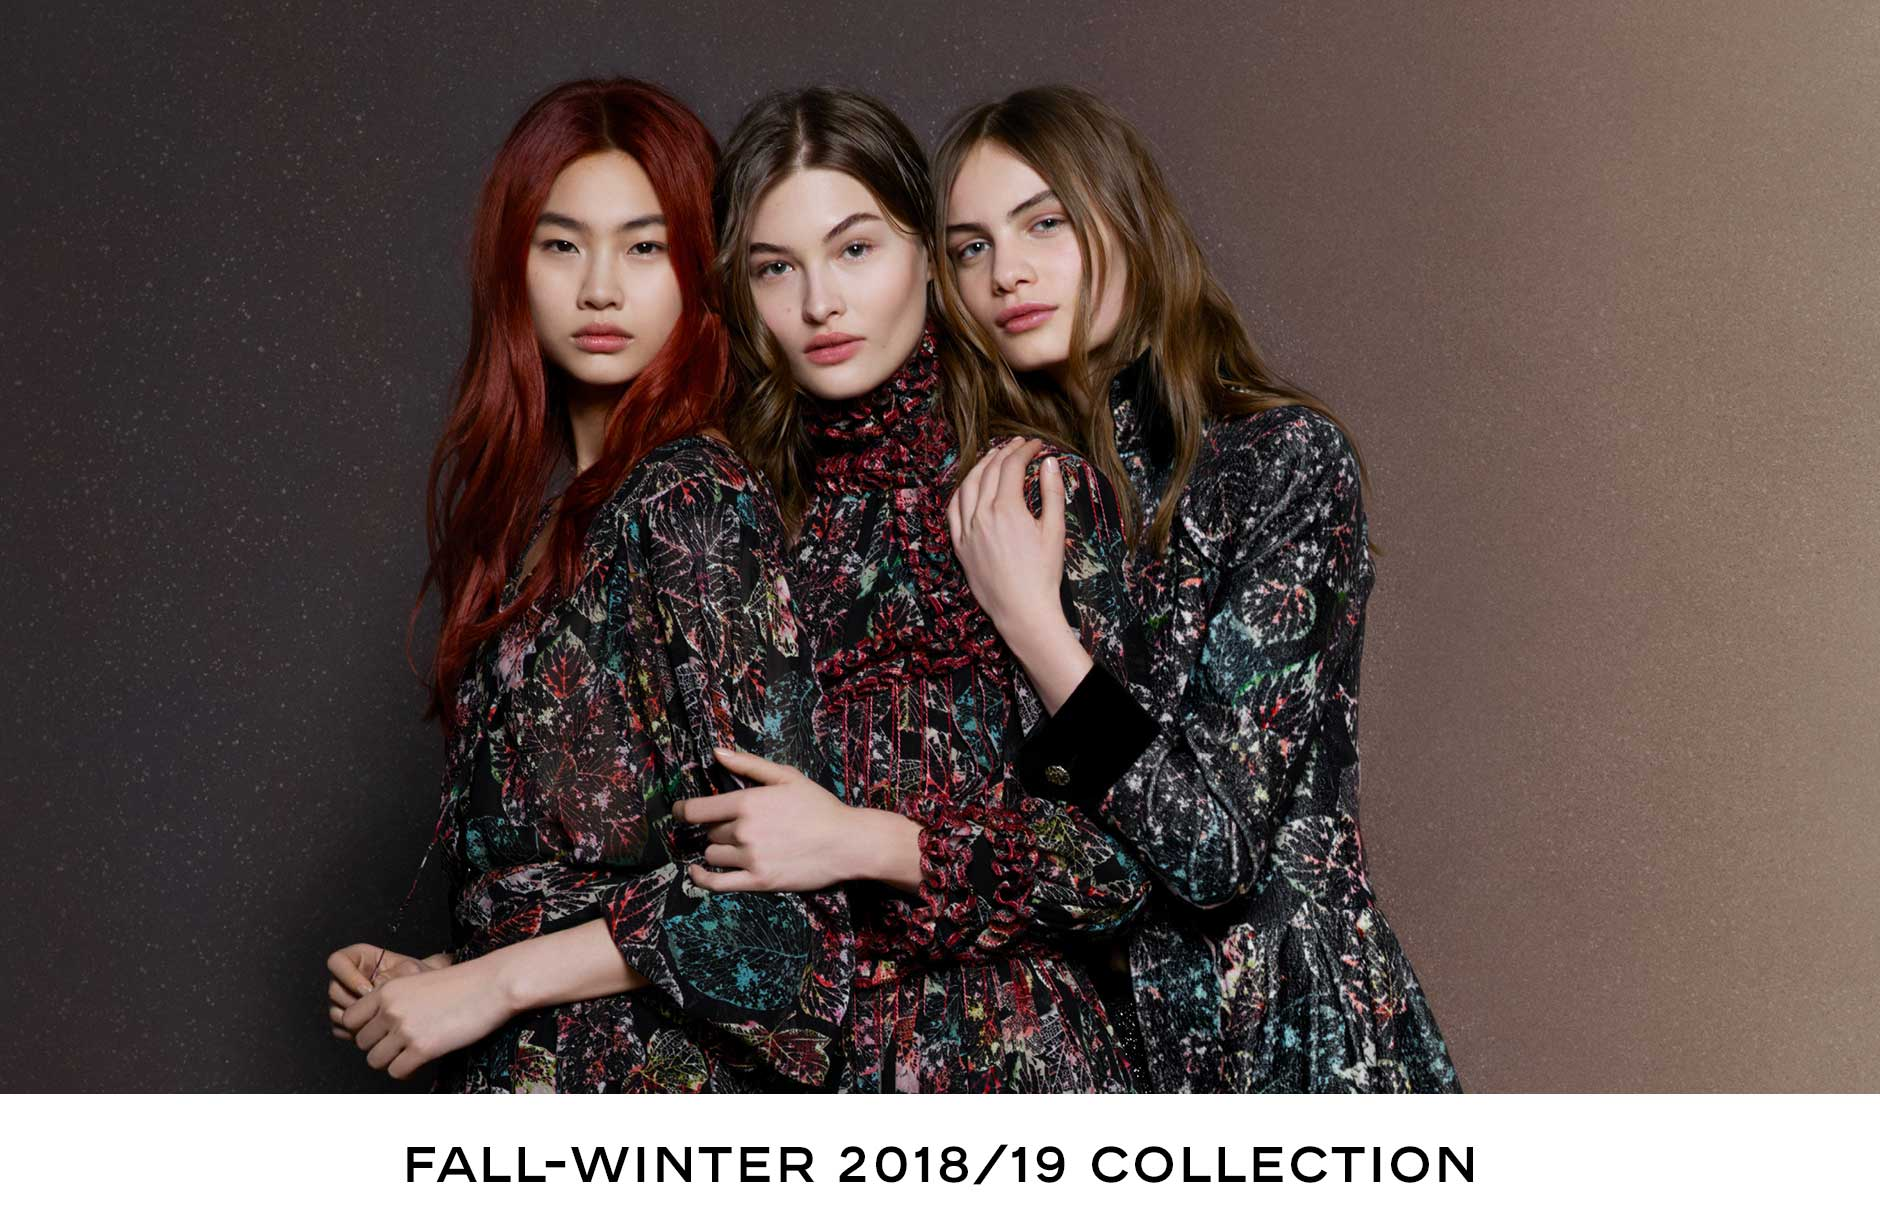 Fall-Winter 2018/19 Collection